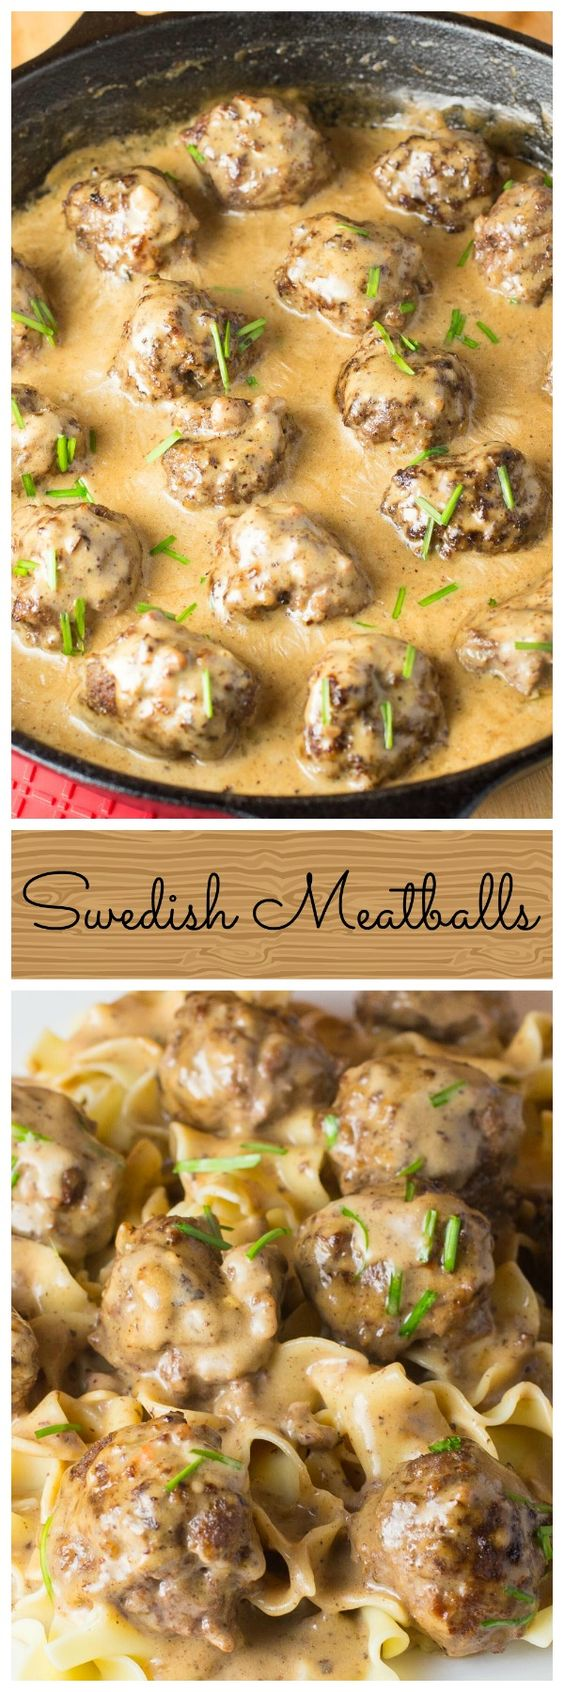 Swedish Meatballs (Canada) ArtandtheKitchen: Swedish Meatballs, delicious meatballs smothered in a rich creamy gravy. I ♥ her photo of these w pasta but I can just see me eating this w lightly golden roasted spuds & broccoli mmm. ♥ that she uses all beef, and worchestershire sauce & dijon mustard (halal brand masterfoods au) mmm ♥